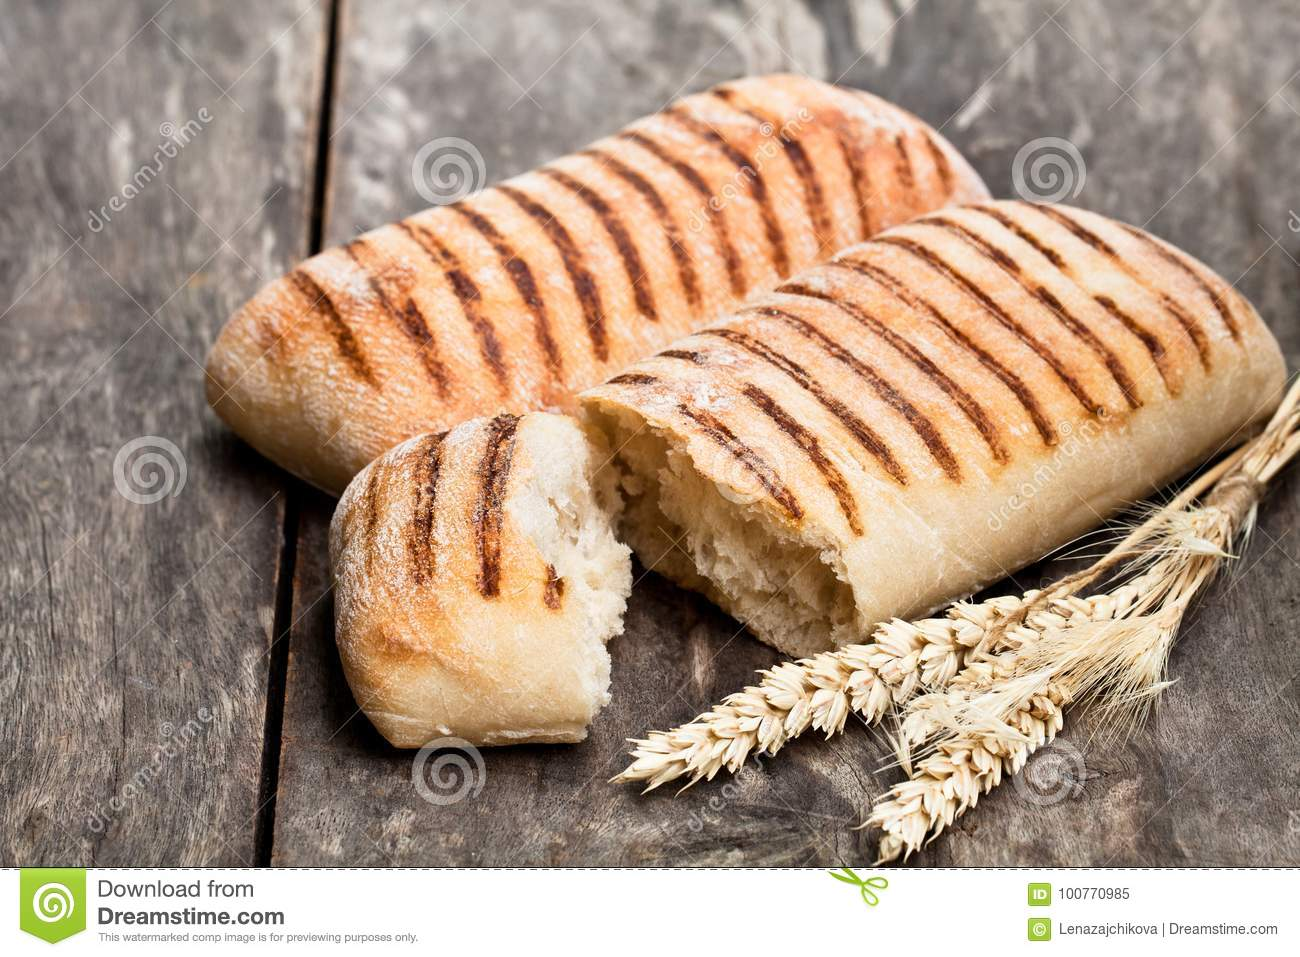 Homemade fresh panini bread on white